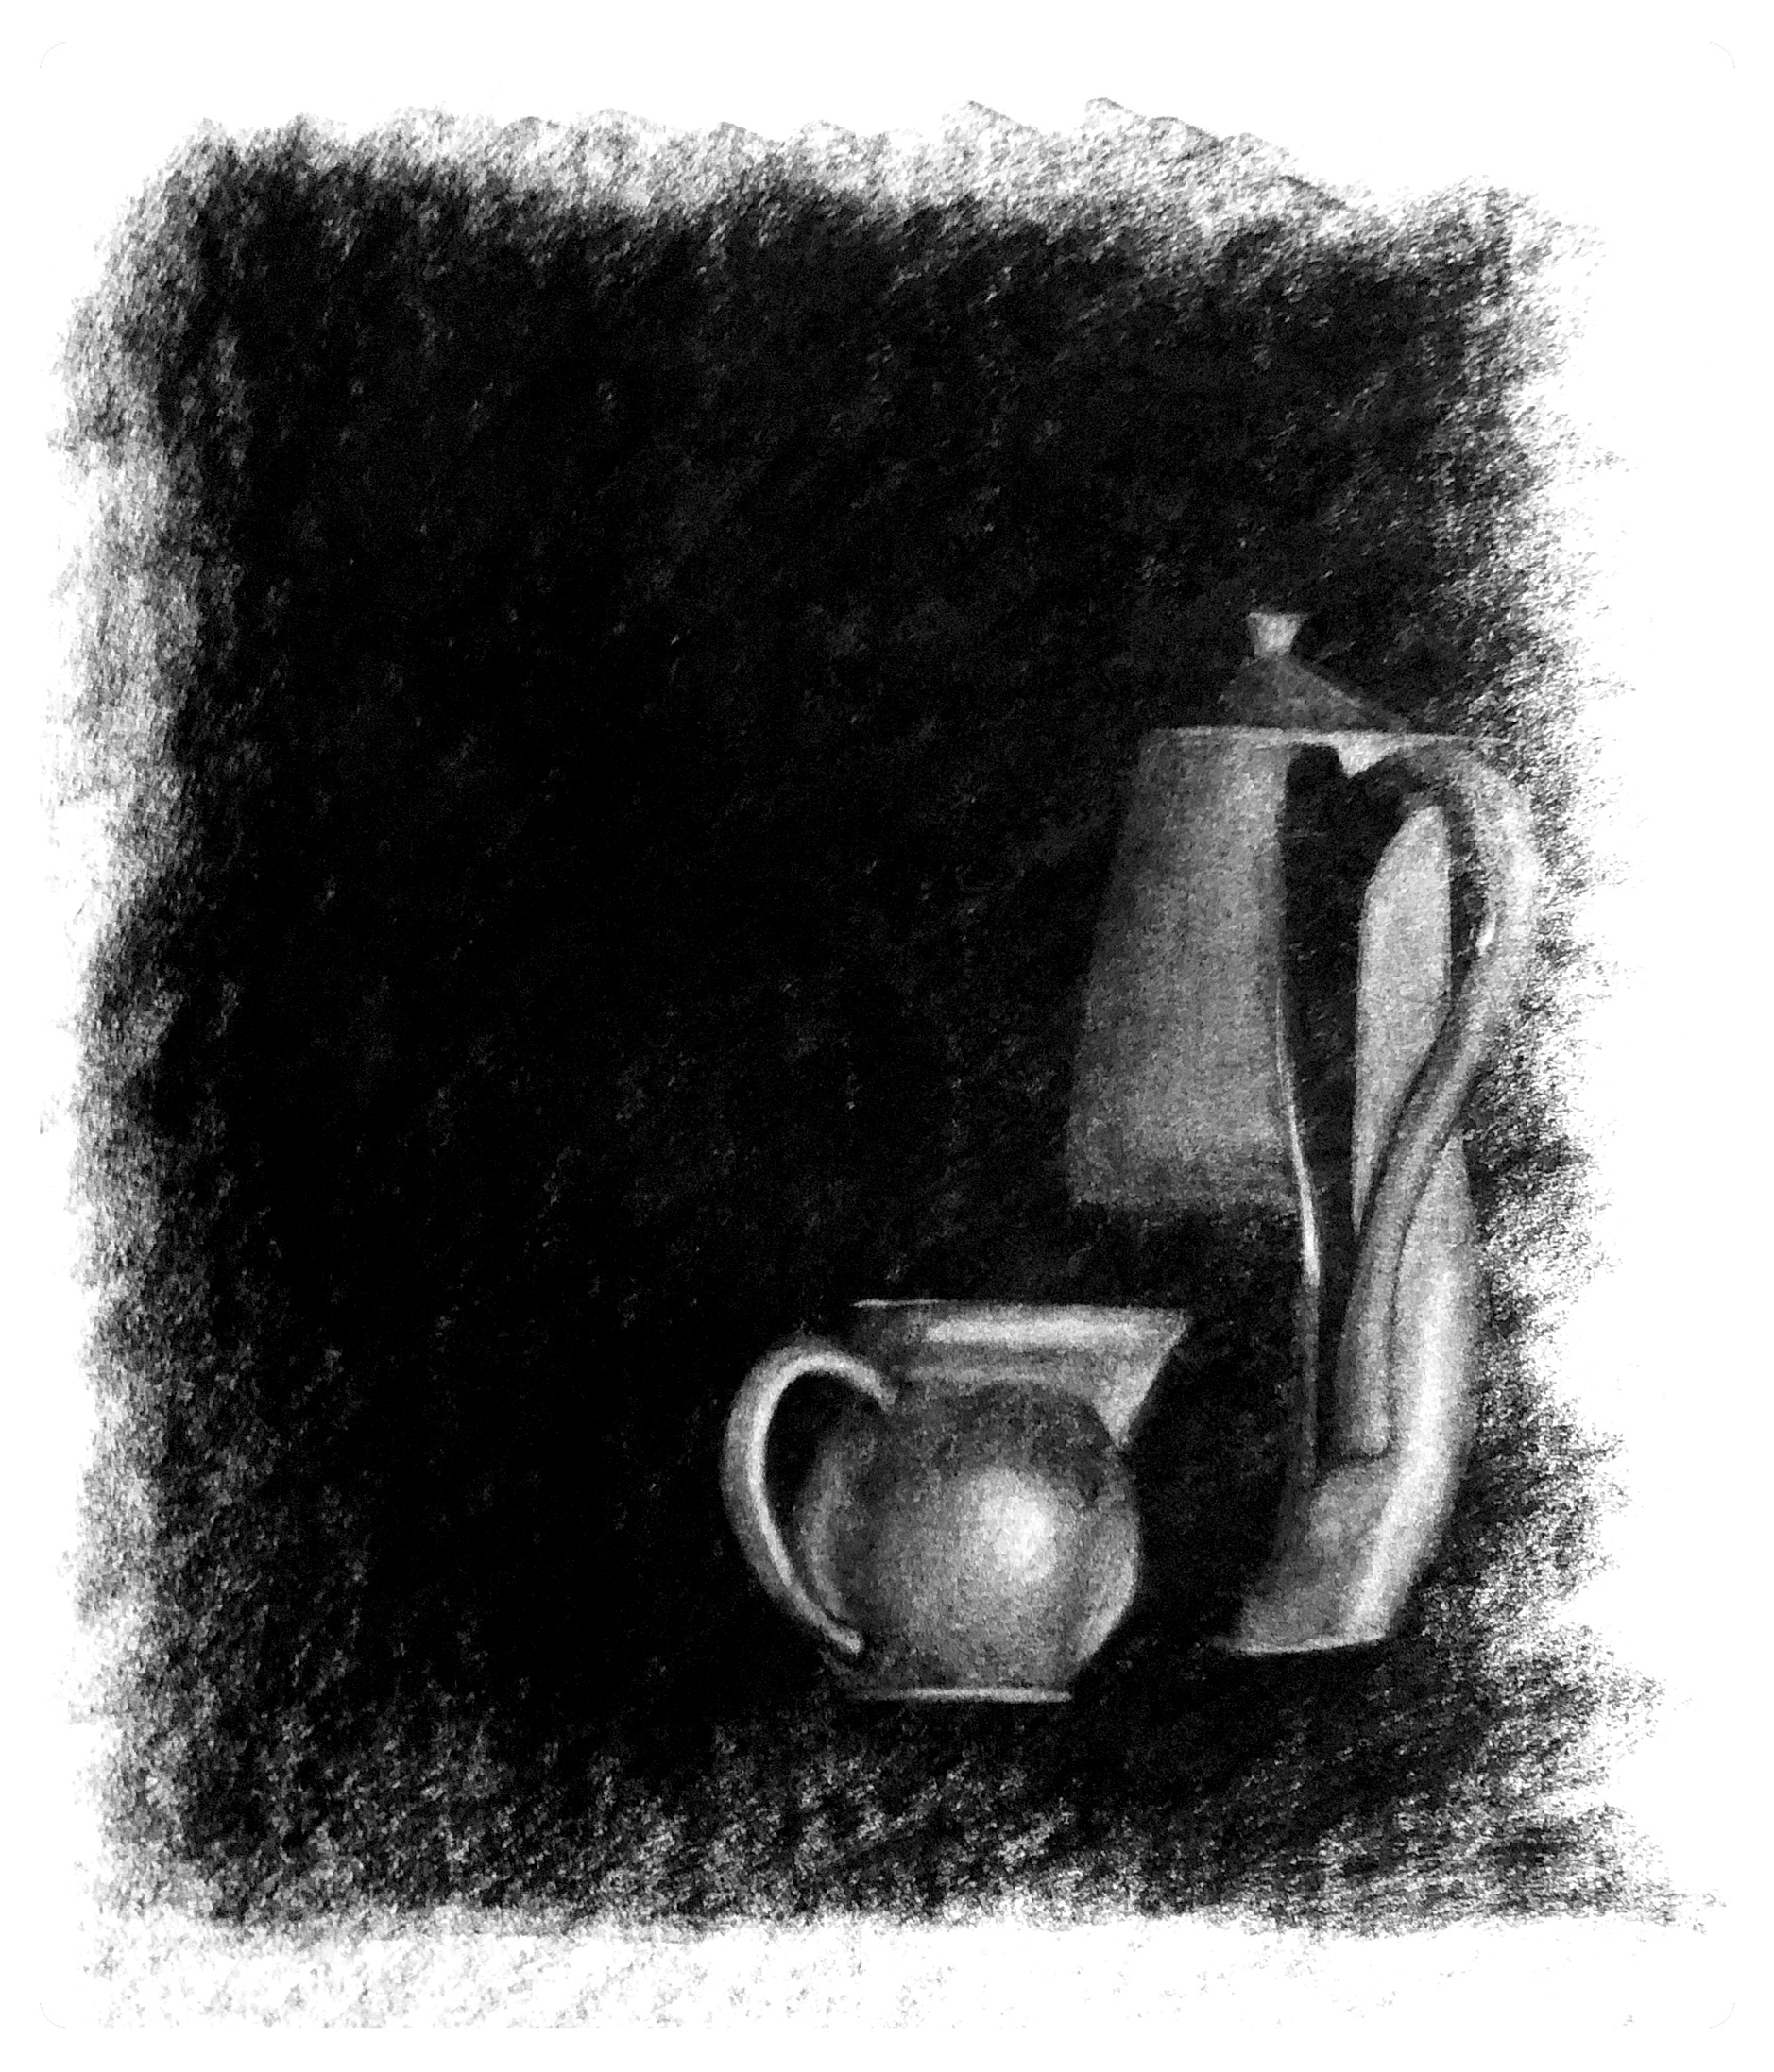 web_2007_art_charcoal-on-paper_still-life_containers.jpg